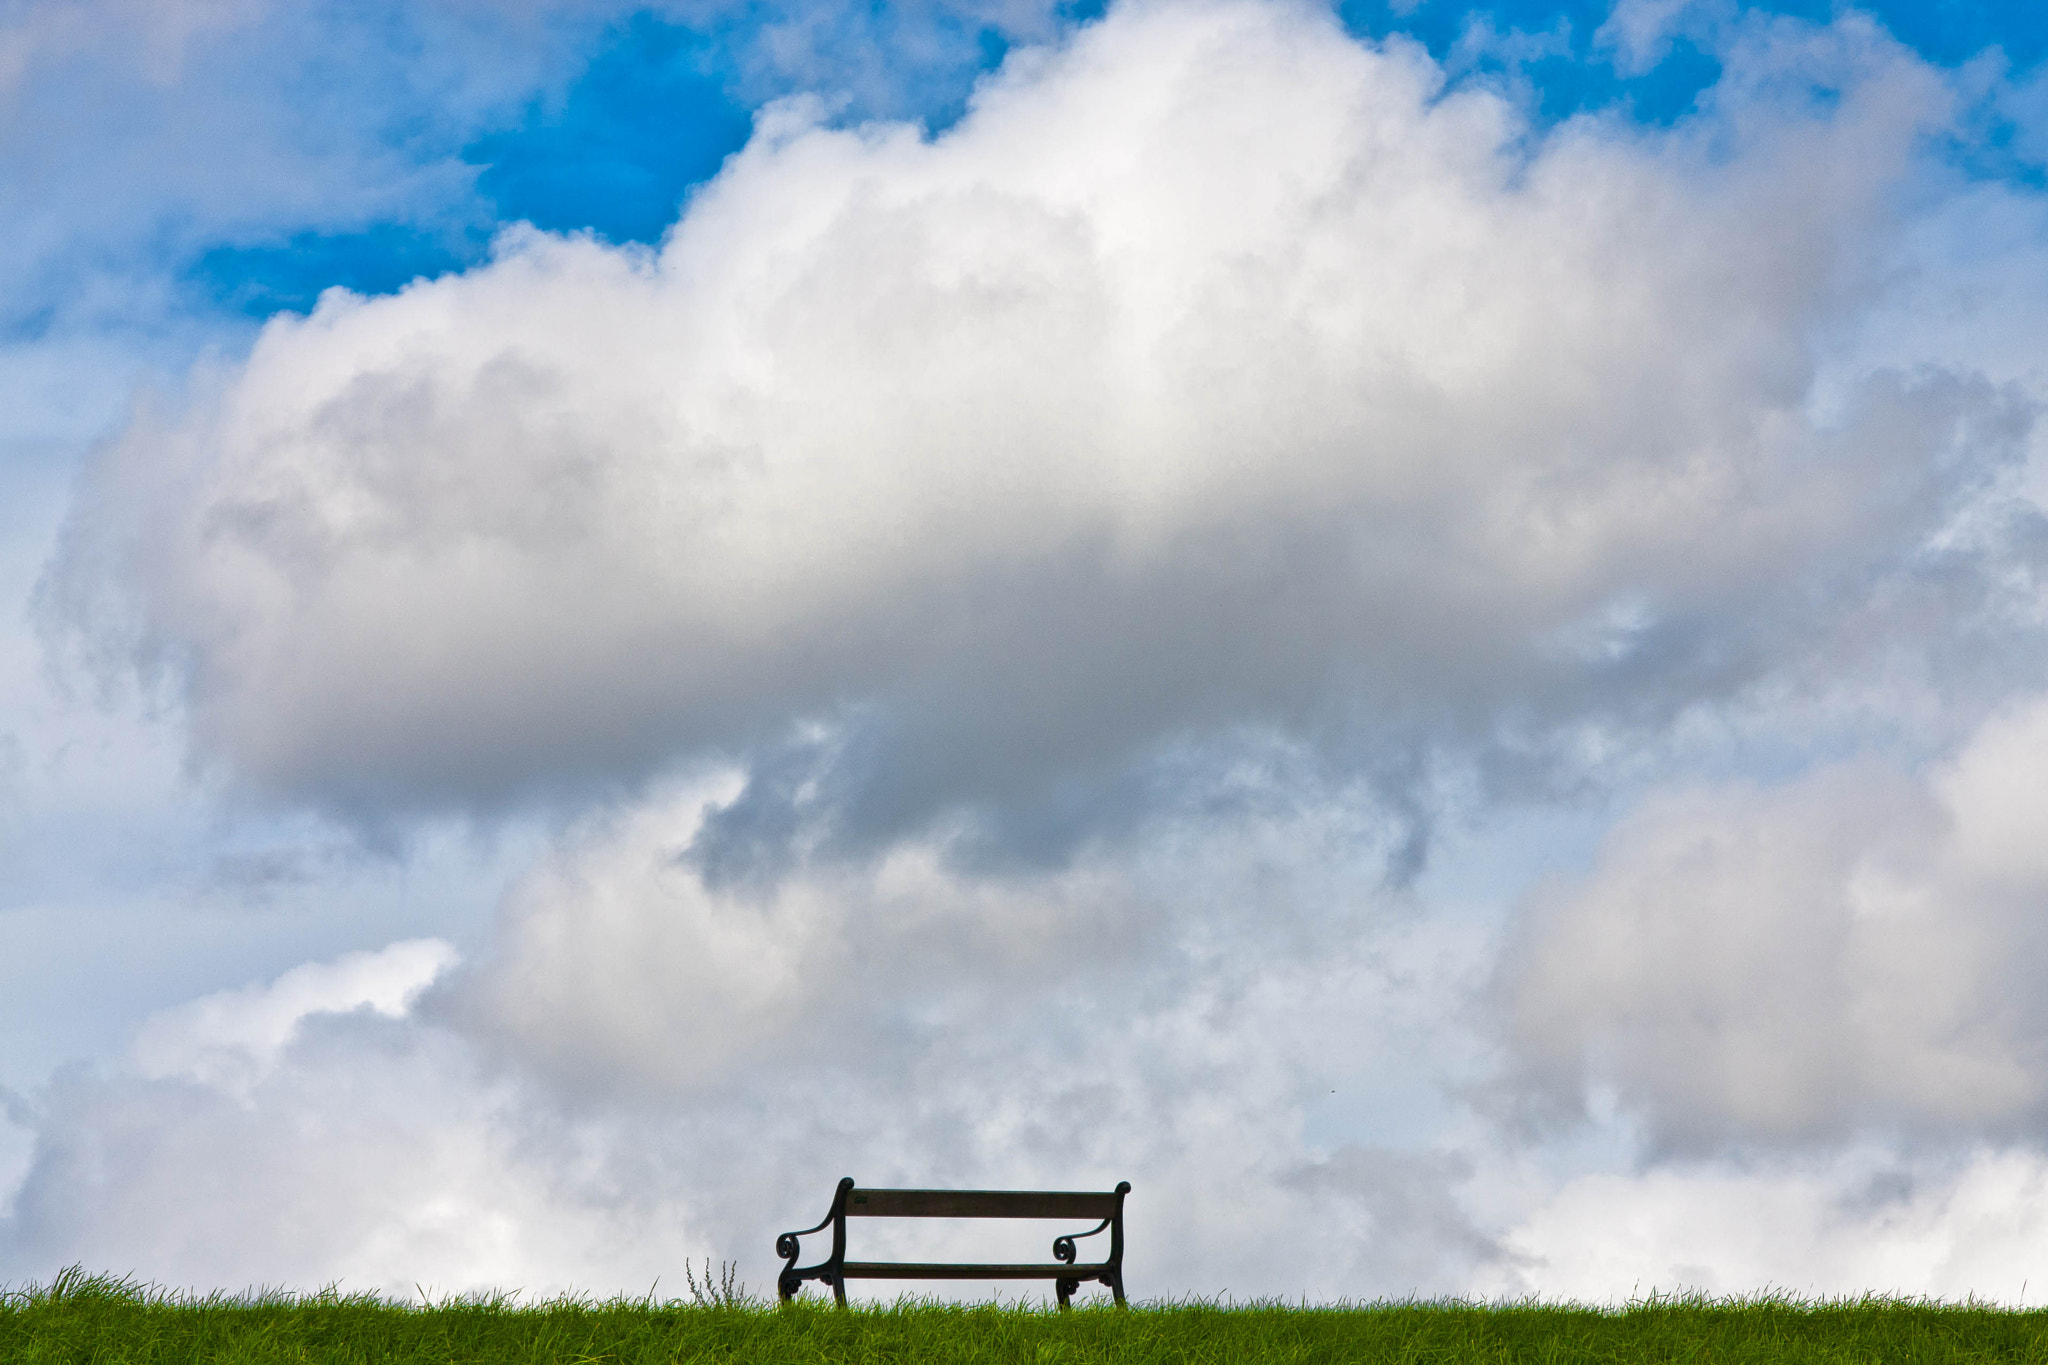 Photograph The bench's hat by María José Torres on 500px